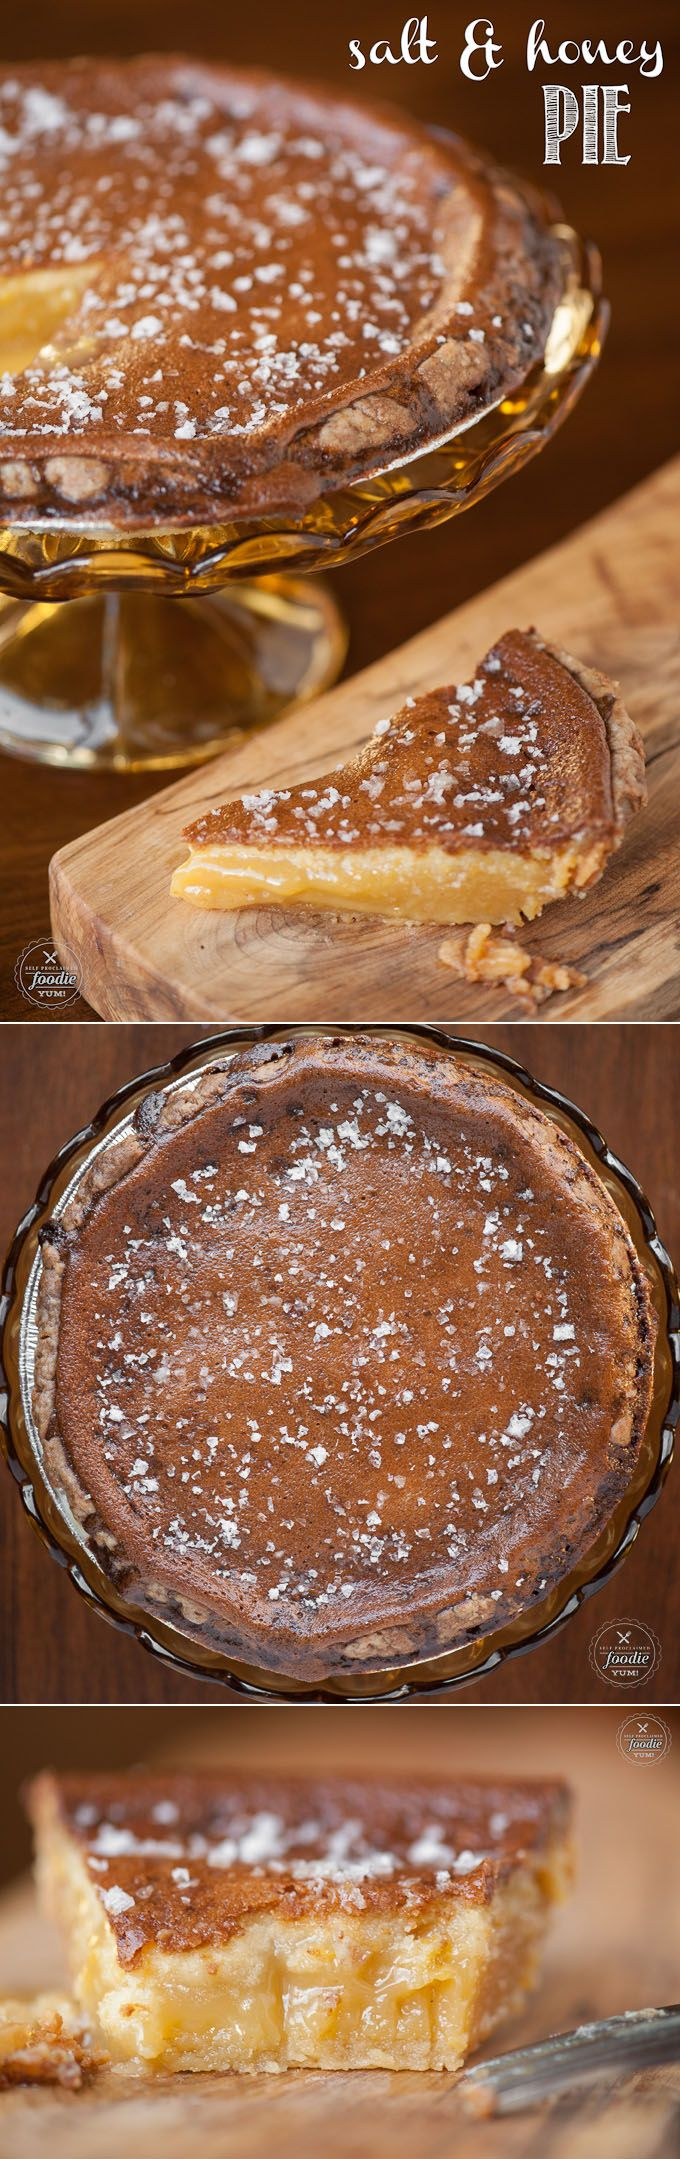 You've never tasted anything like this Salt & Honey Pie. It is the most rich, decadent, and downright delicious dessert that is perfect for the holidays.